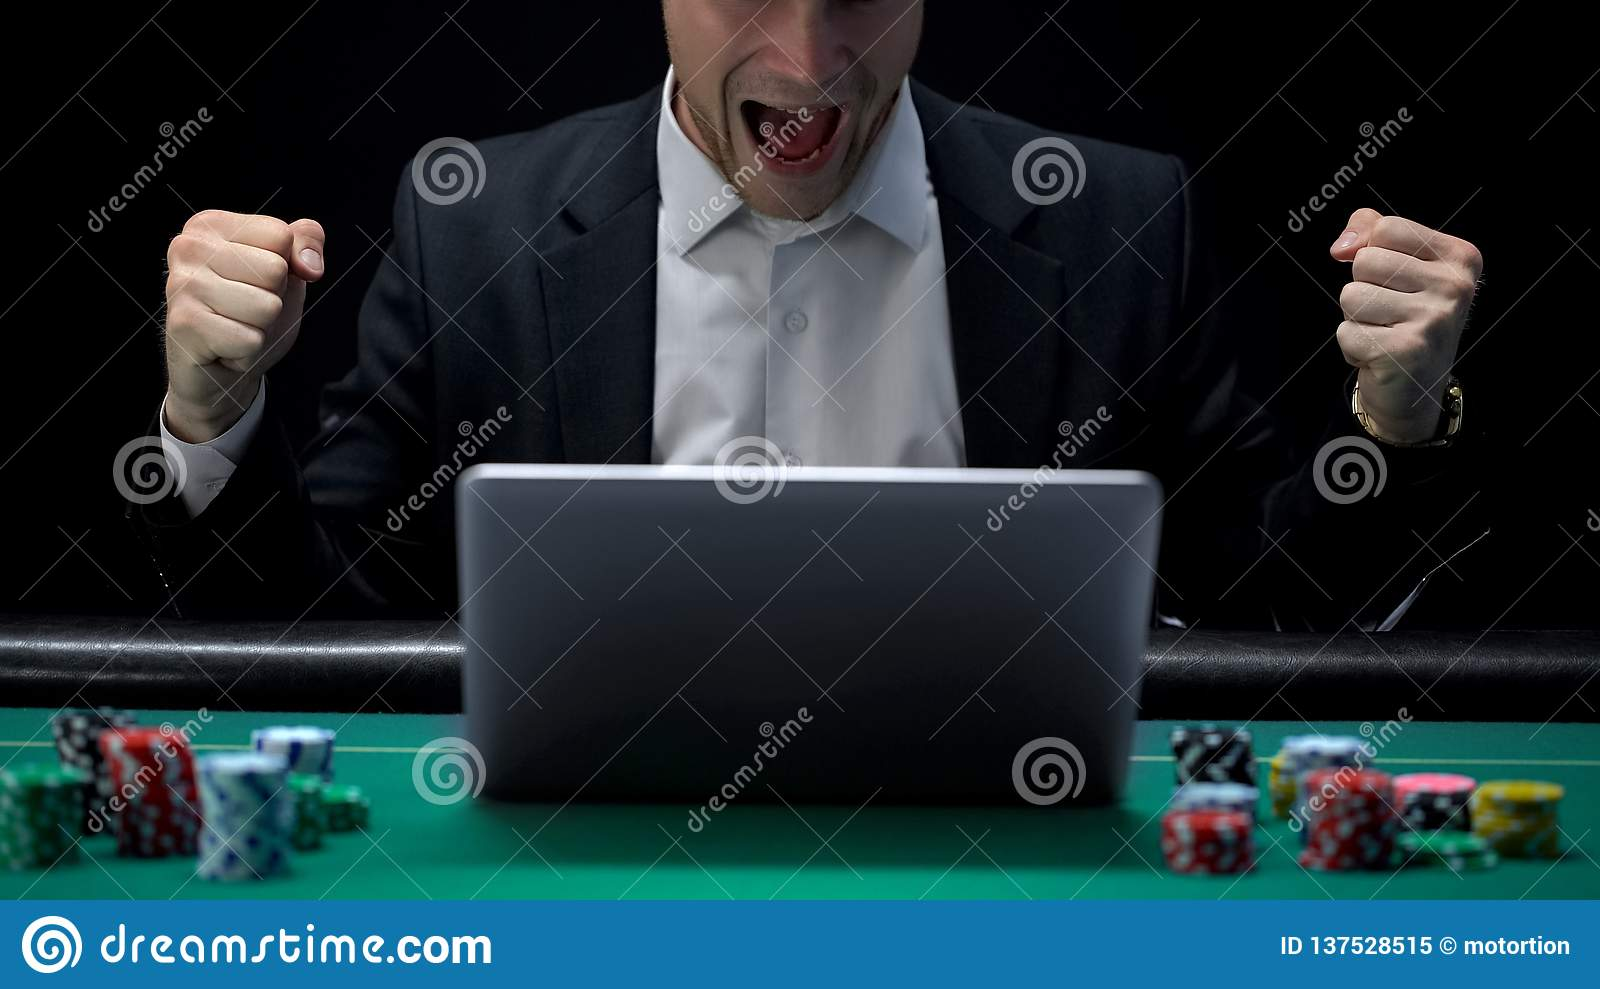 Player gambling on laptop and screaming in excitement, winning bet, fortune